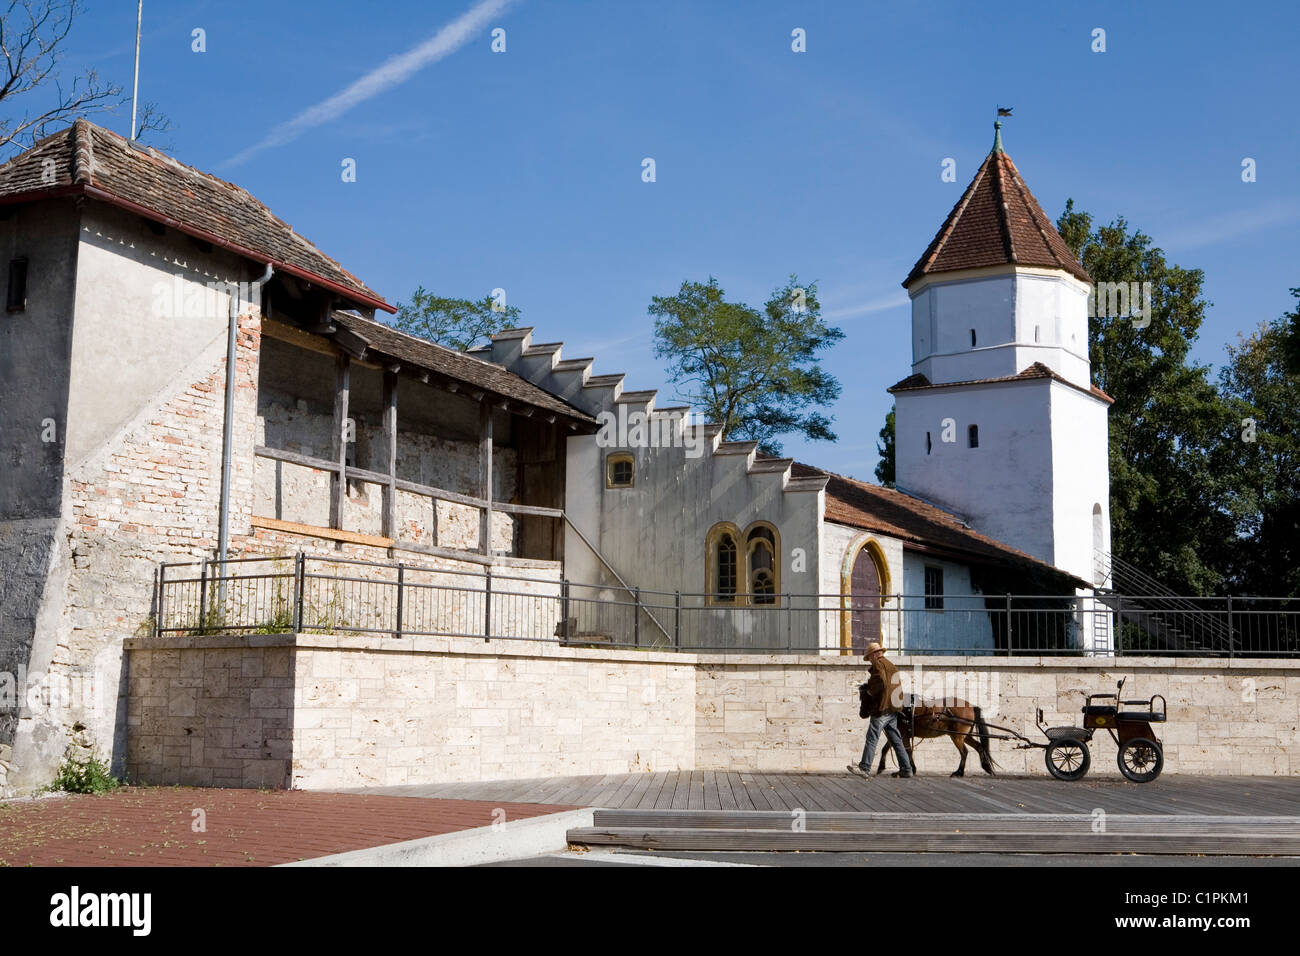 Germany, Bavaria, Schongau, man walking with horse and cart besides tower and old town walls - Stock Image